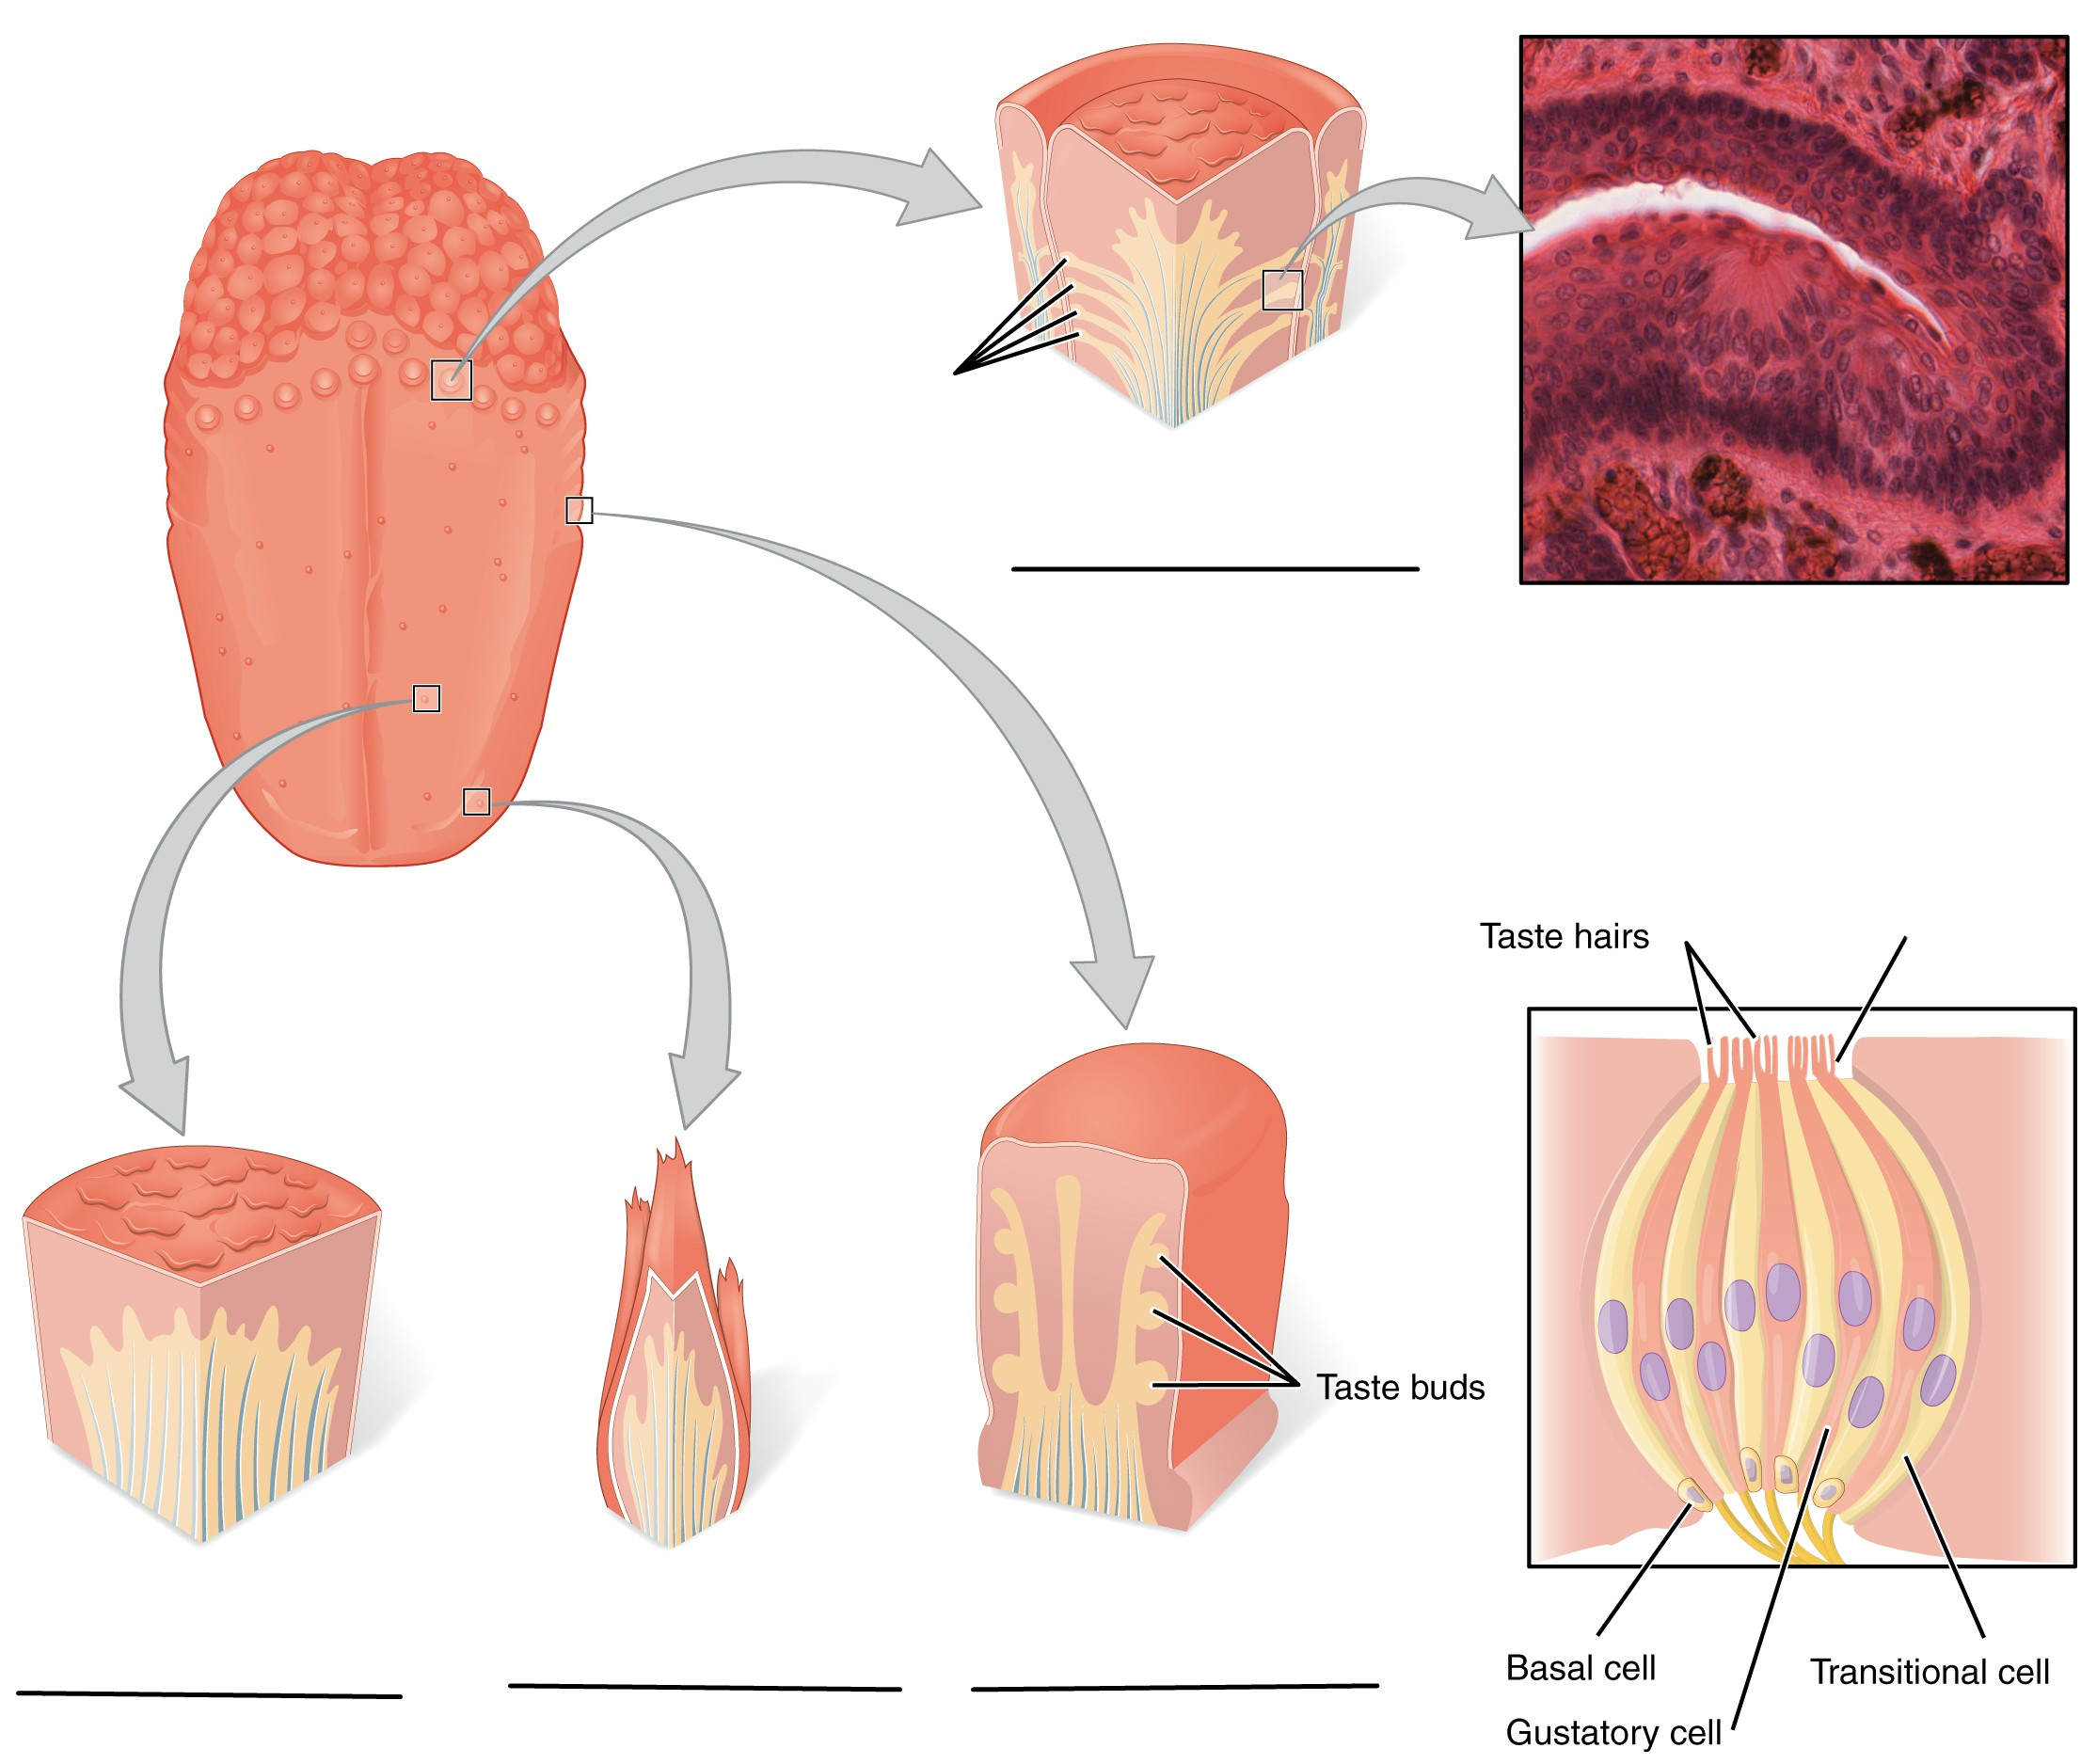 Predefined space to Label the types of papillae and parts of sensory cells and taste buds